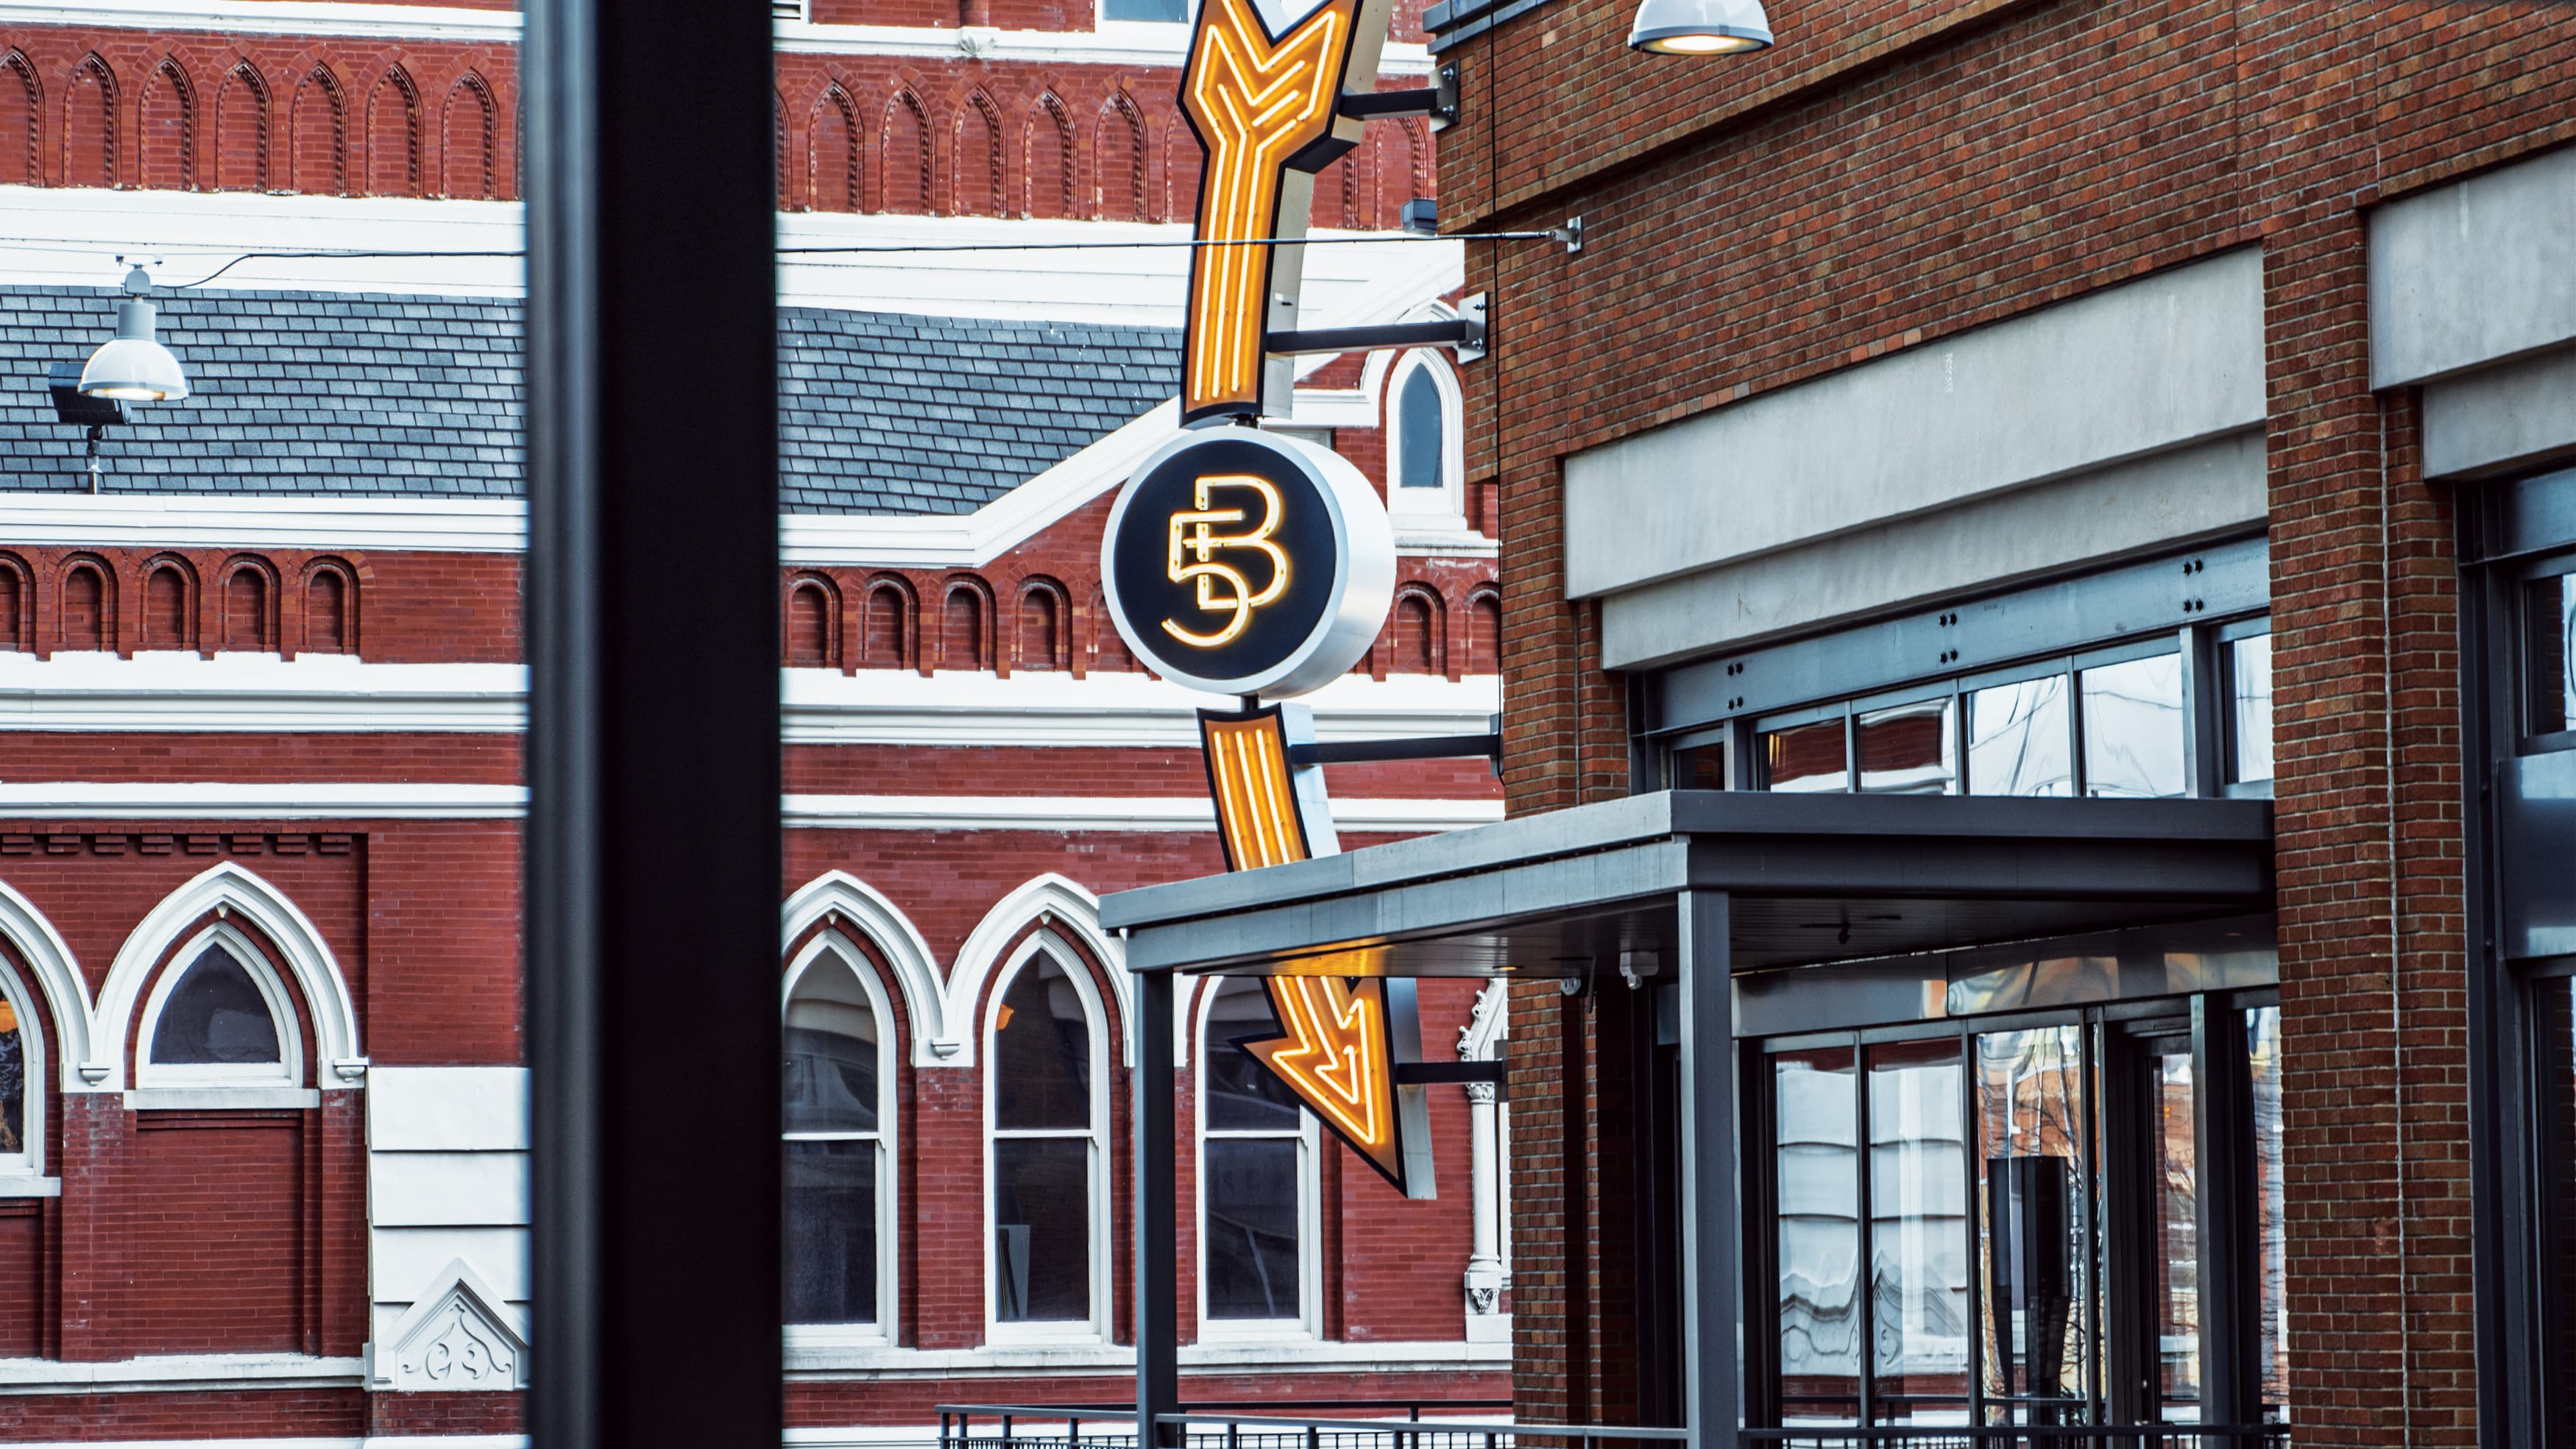 A detailed view of the Fifth and Broadway project identity sign